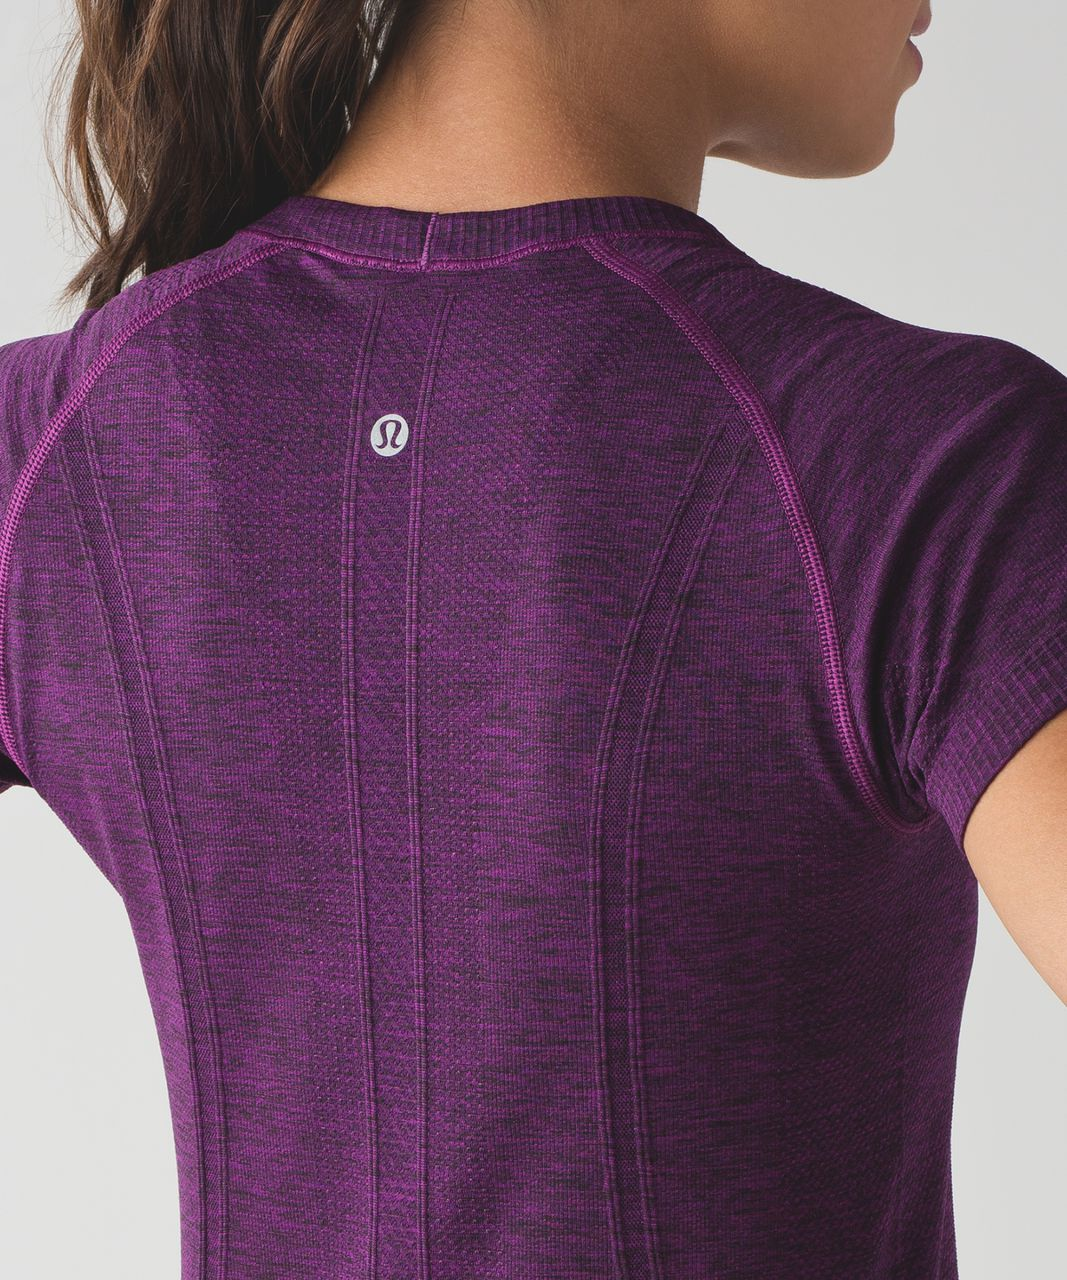 Lululemon Swiftly Tech Short Sleeve Crew - Black / Chilled Grape